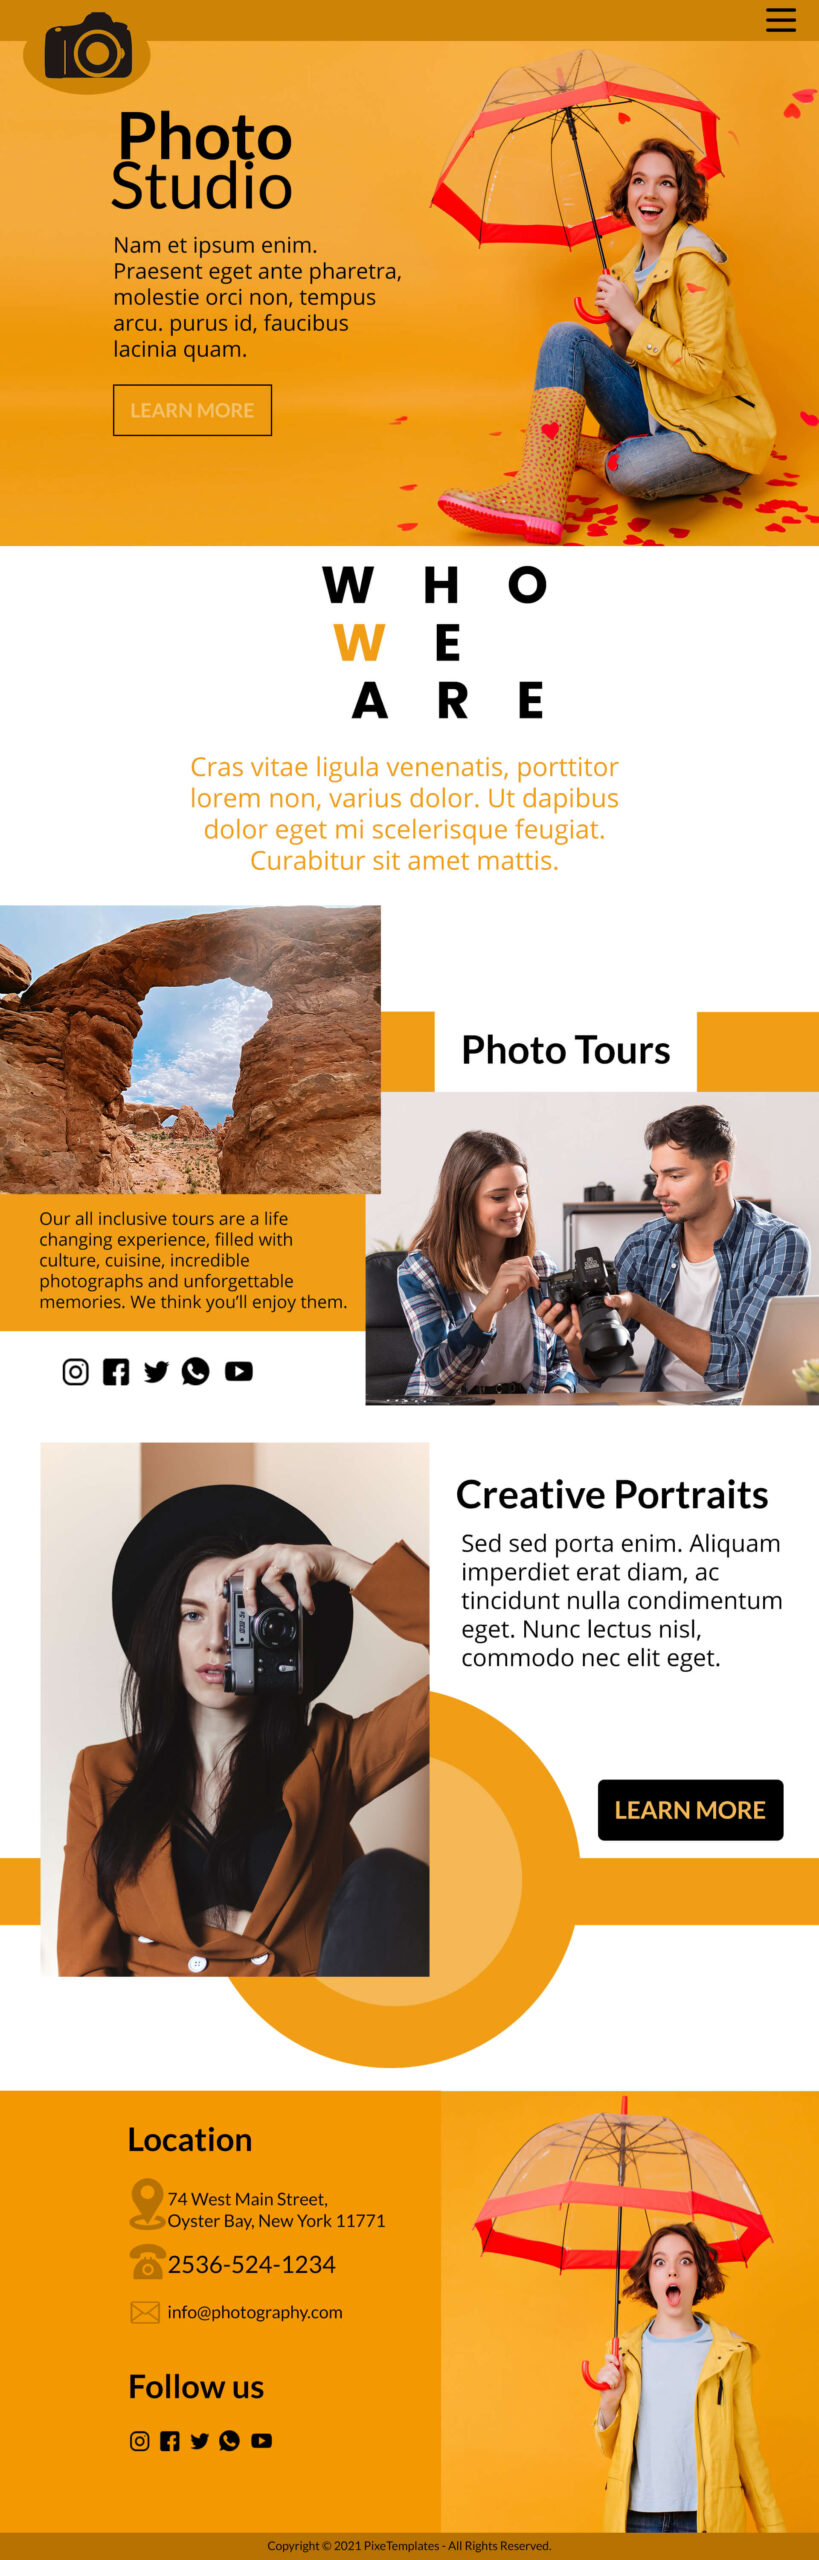 Photo Studio Website Interface With Source PSD